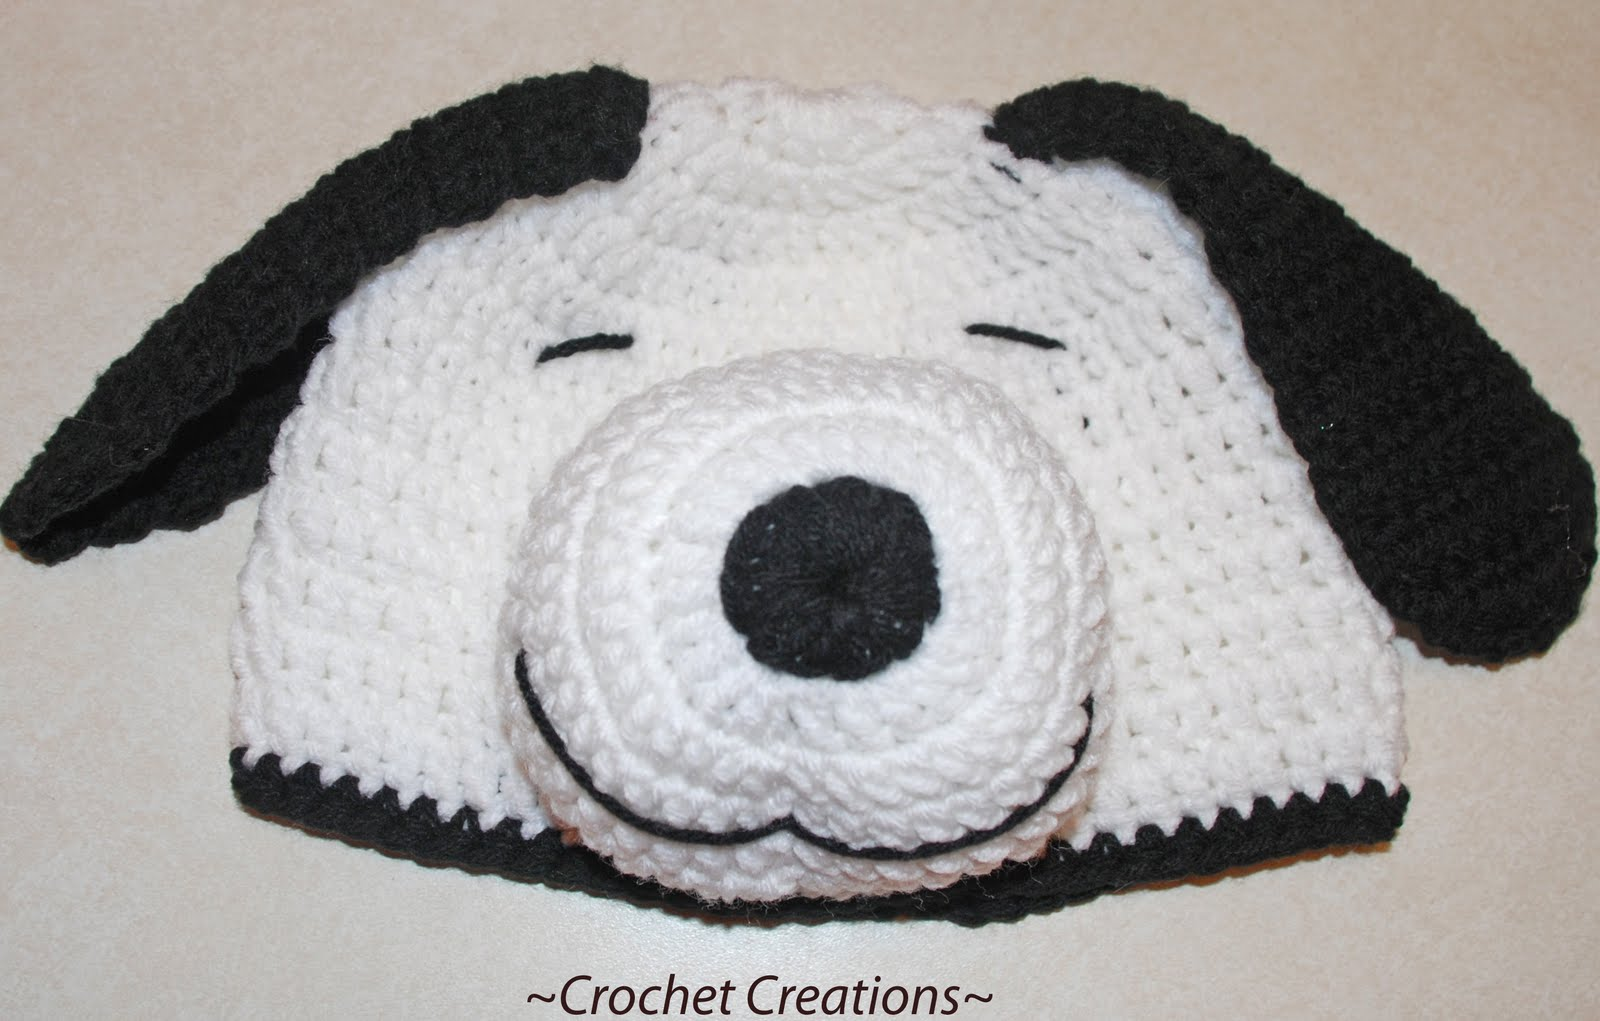 SNOOPY CROCHET PATTERNS ? Easy Crochet Patterns